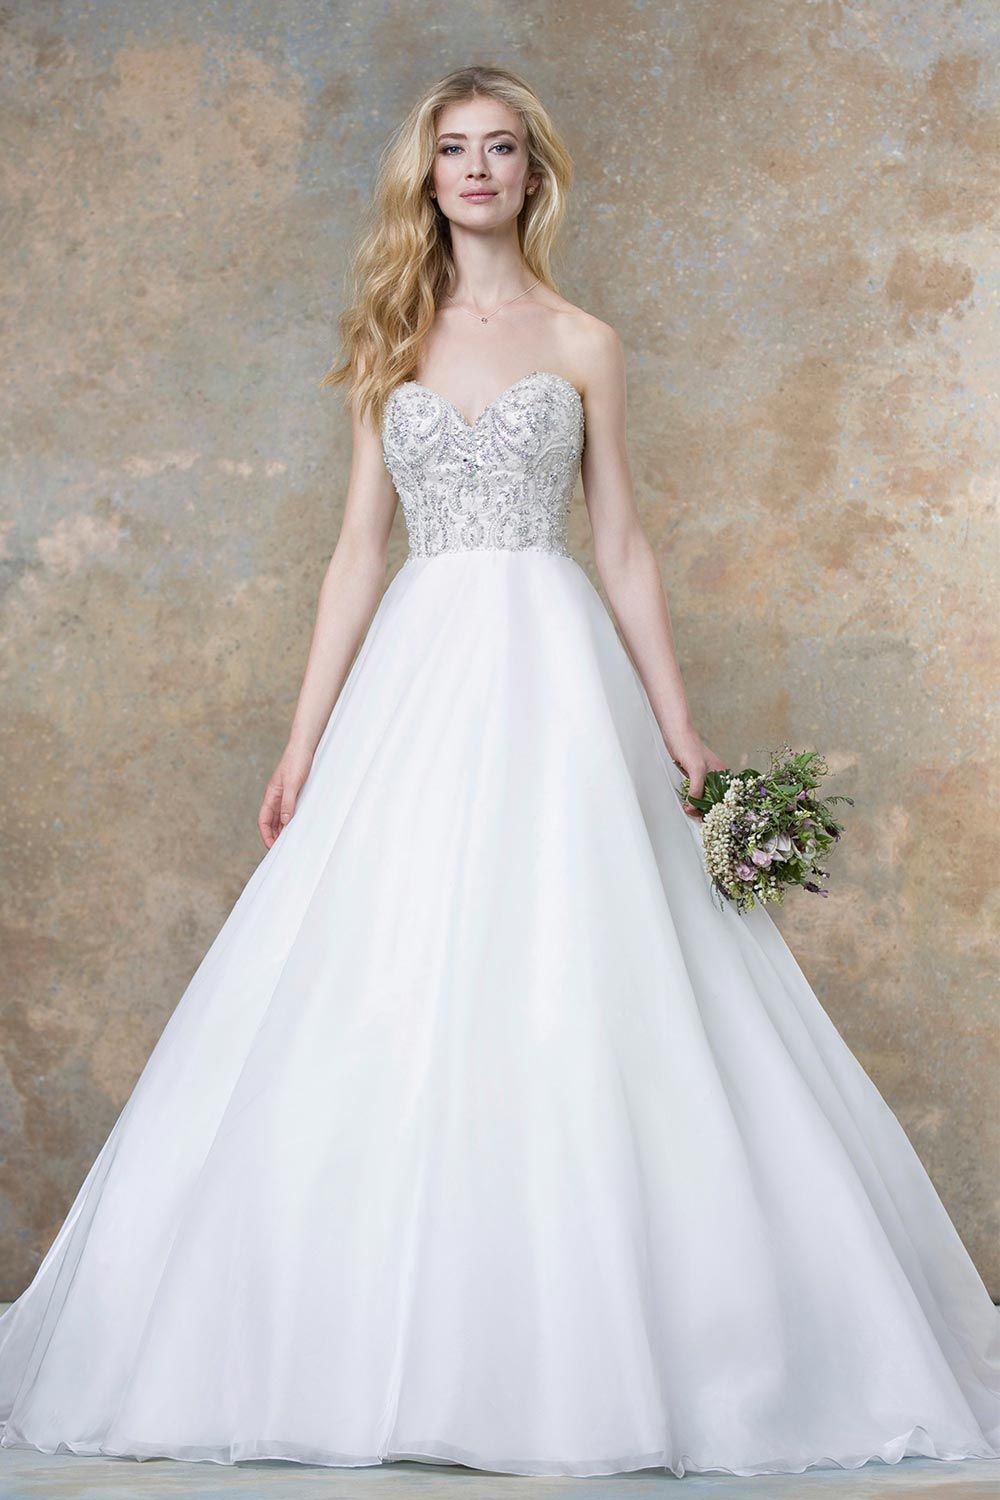 Traditional wedding dress with sparkly bodice from Ellis Bridals